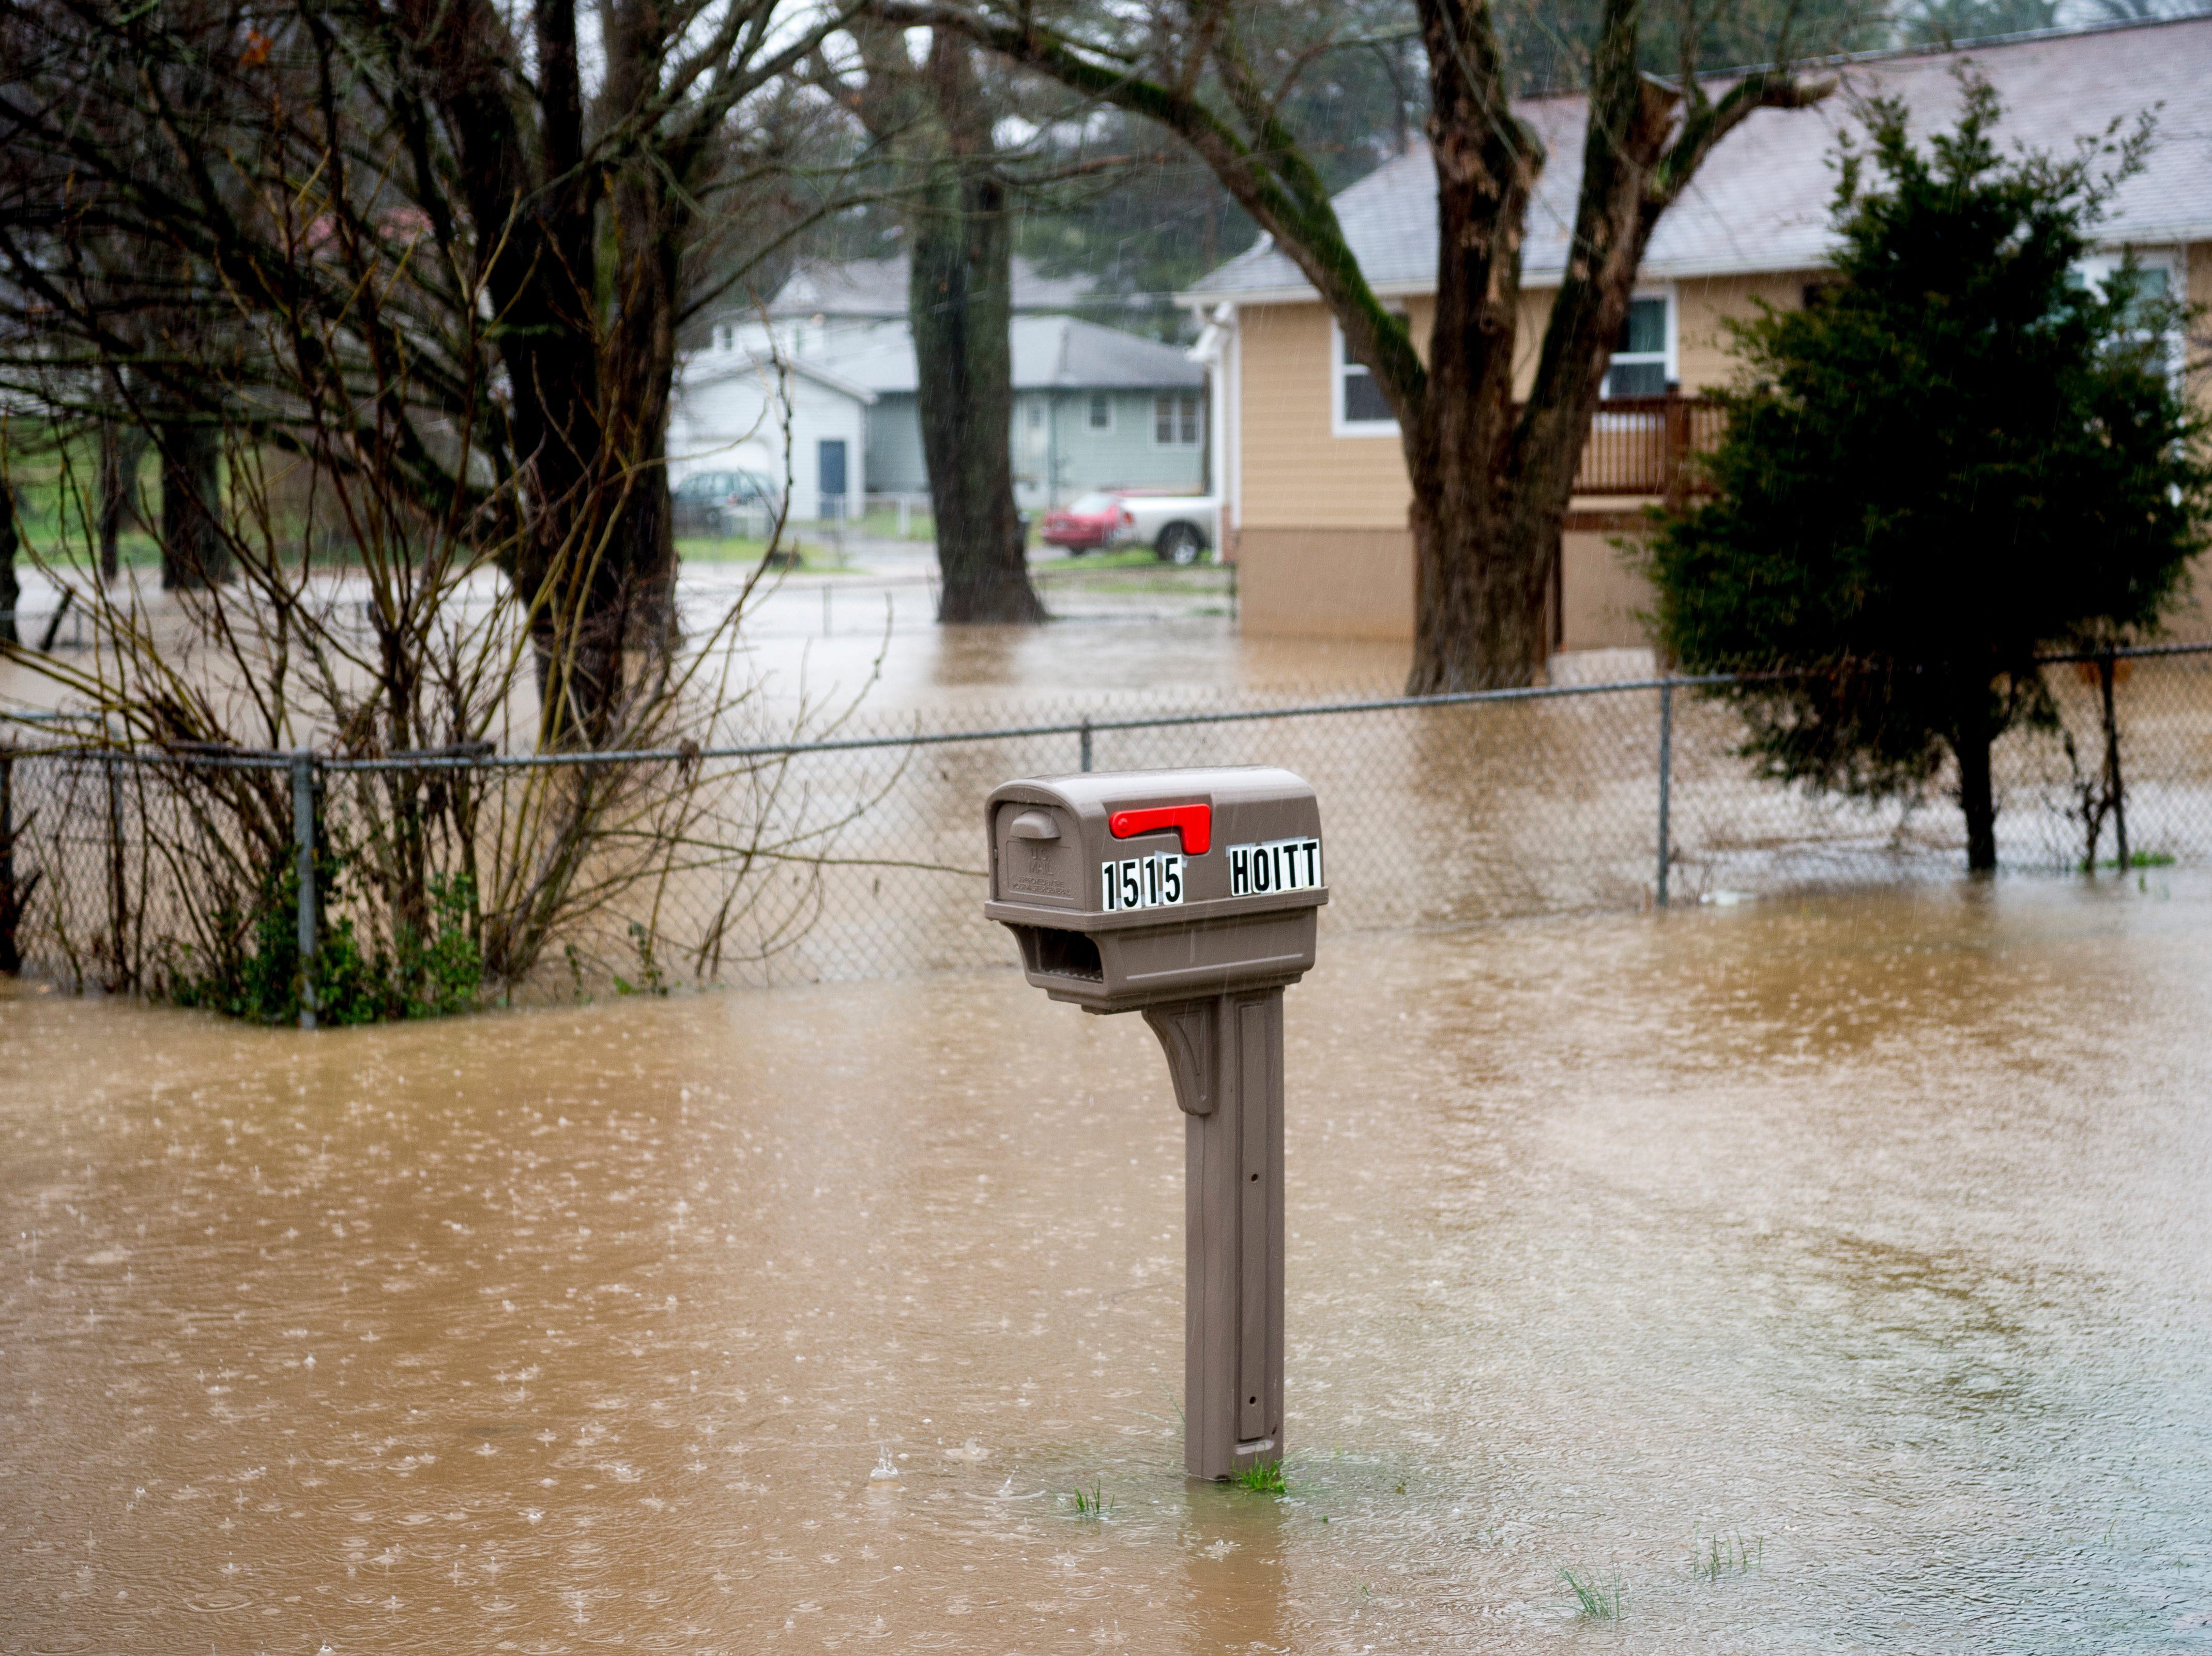 1515 Hoitt Ave. is seen flooded during a heavy rainstorm in Knoxville, Tennessee on Saturday, February 23, 2019. The Knoxville area could see between 2 and 3 inches through the weekend.